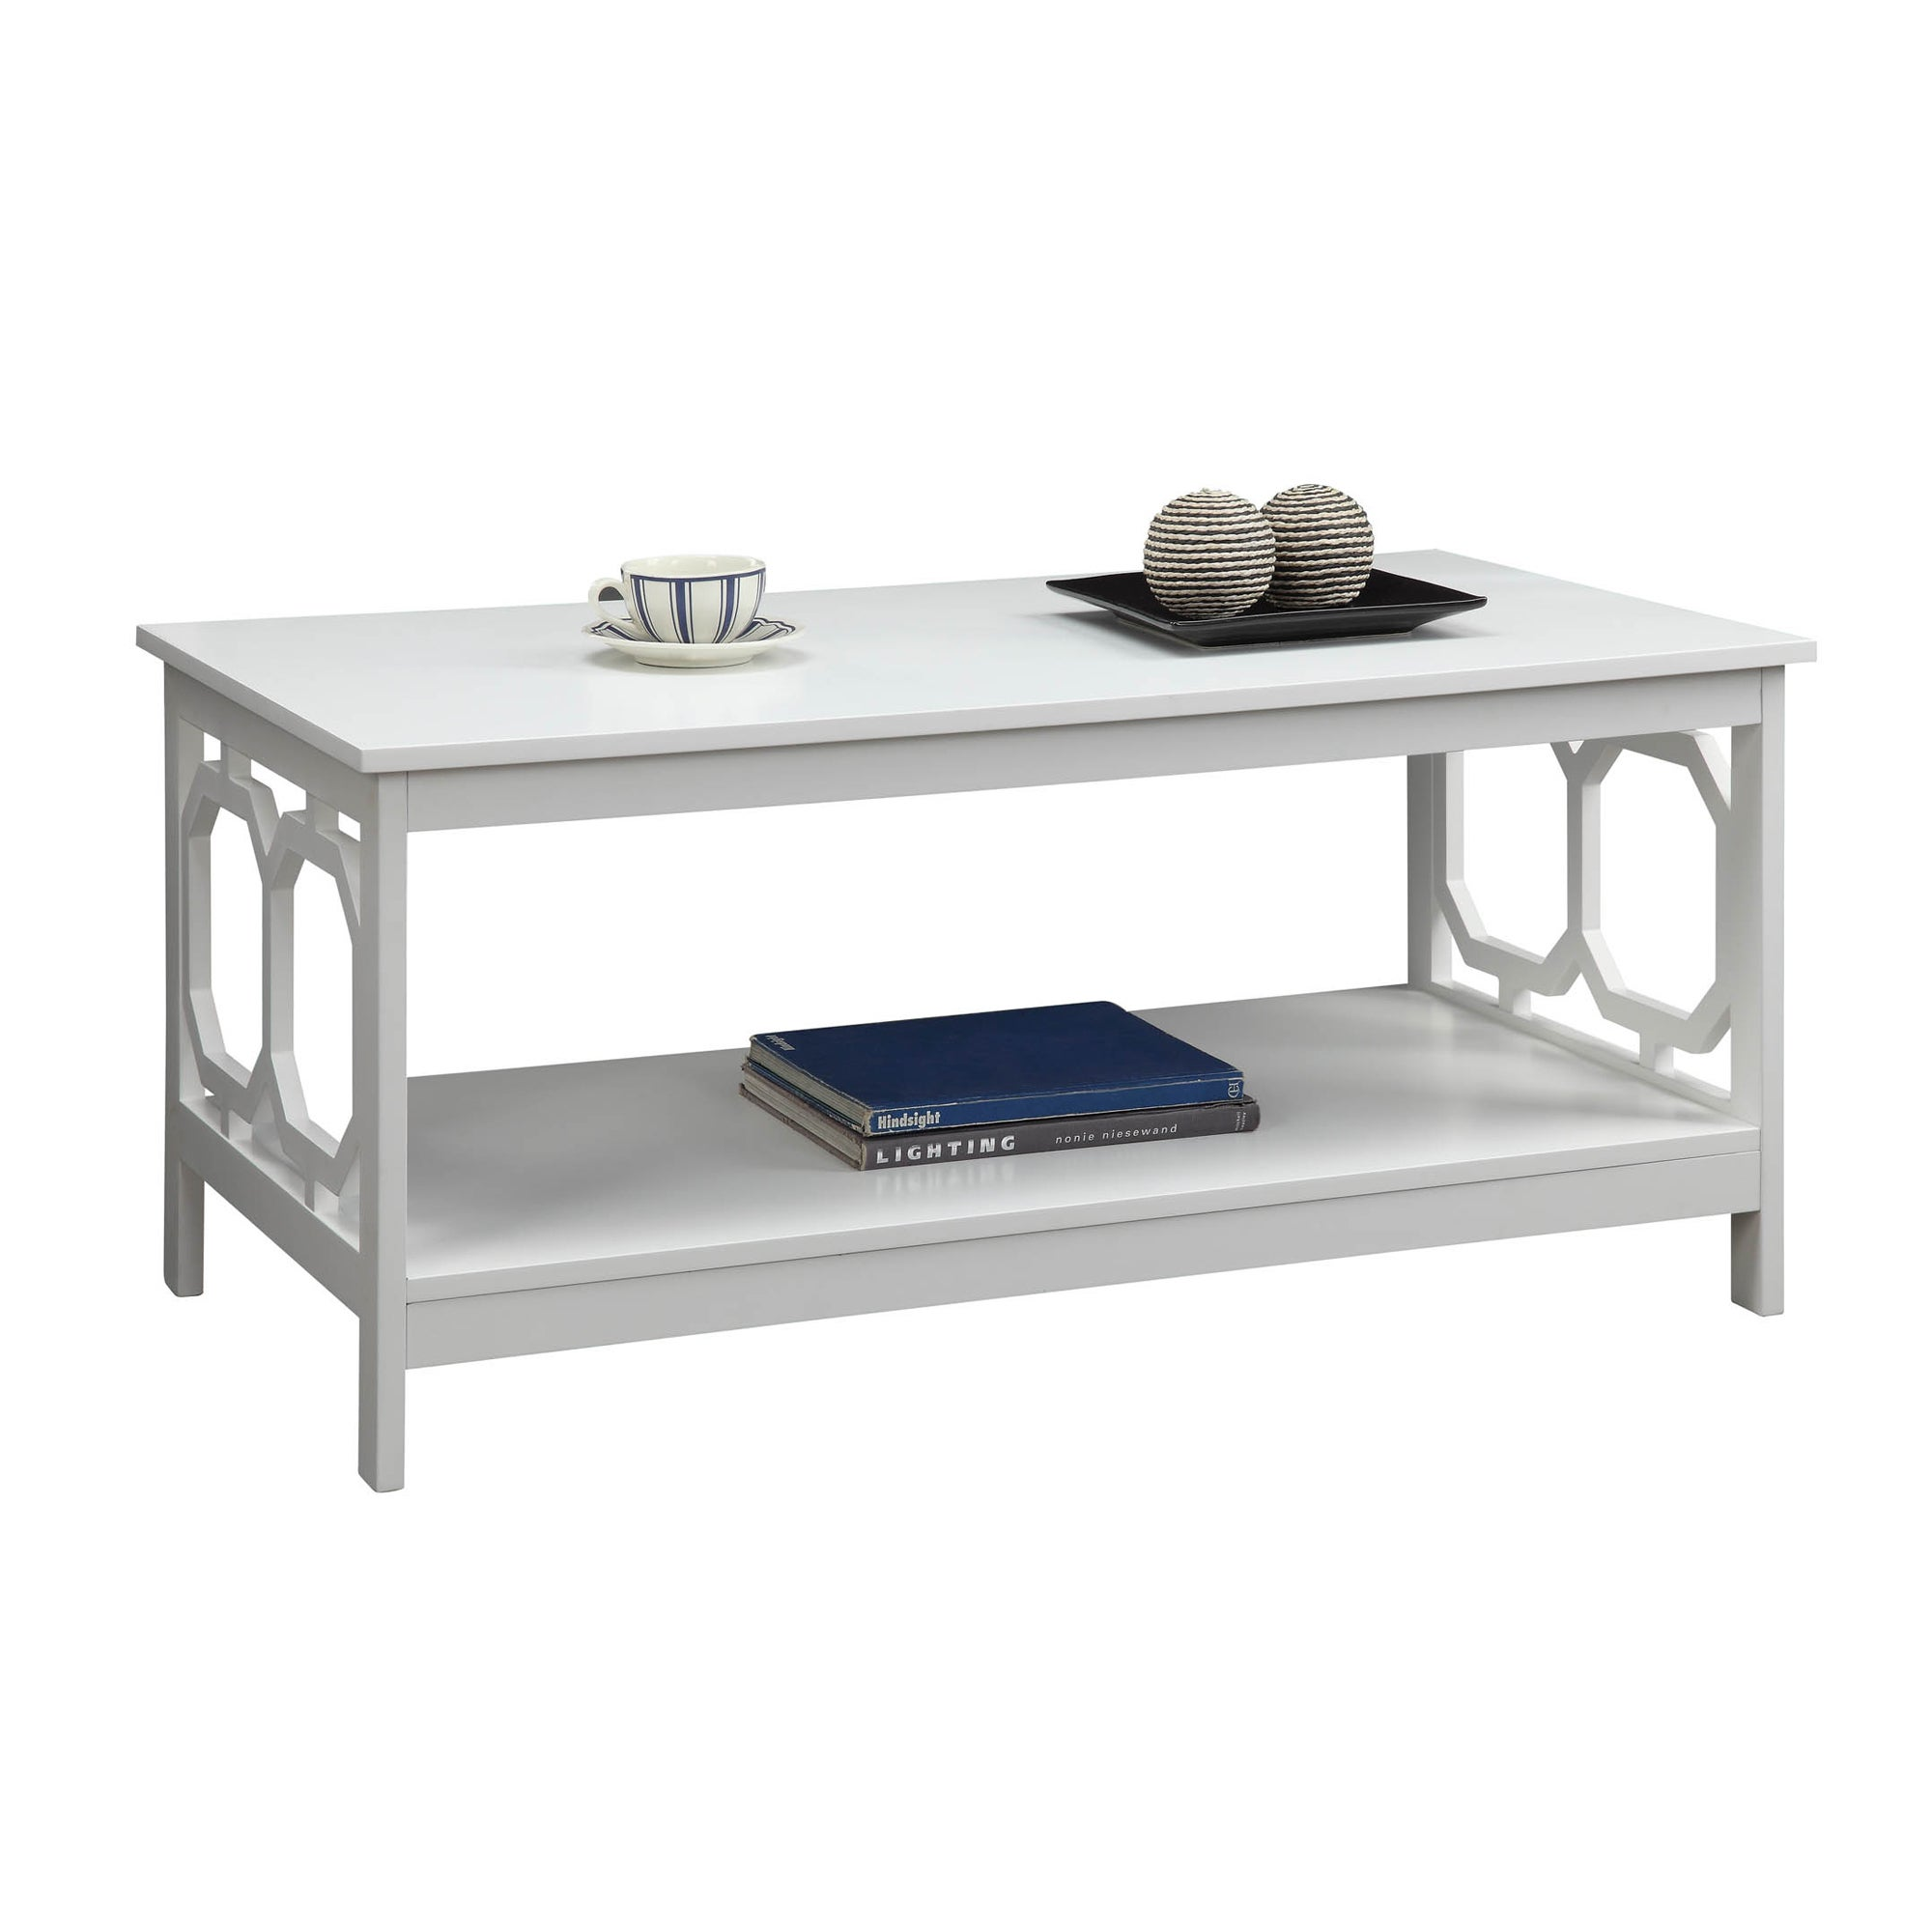 Convenience Concepts Omega Coffee Table in Black or White Free